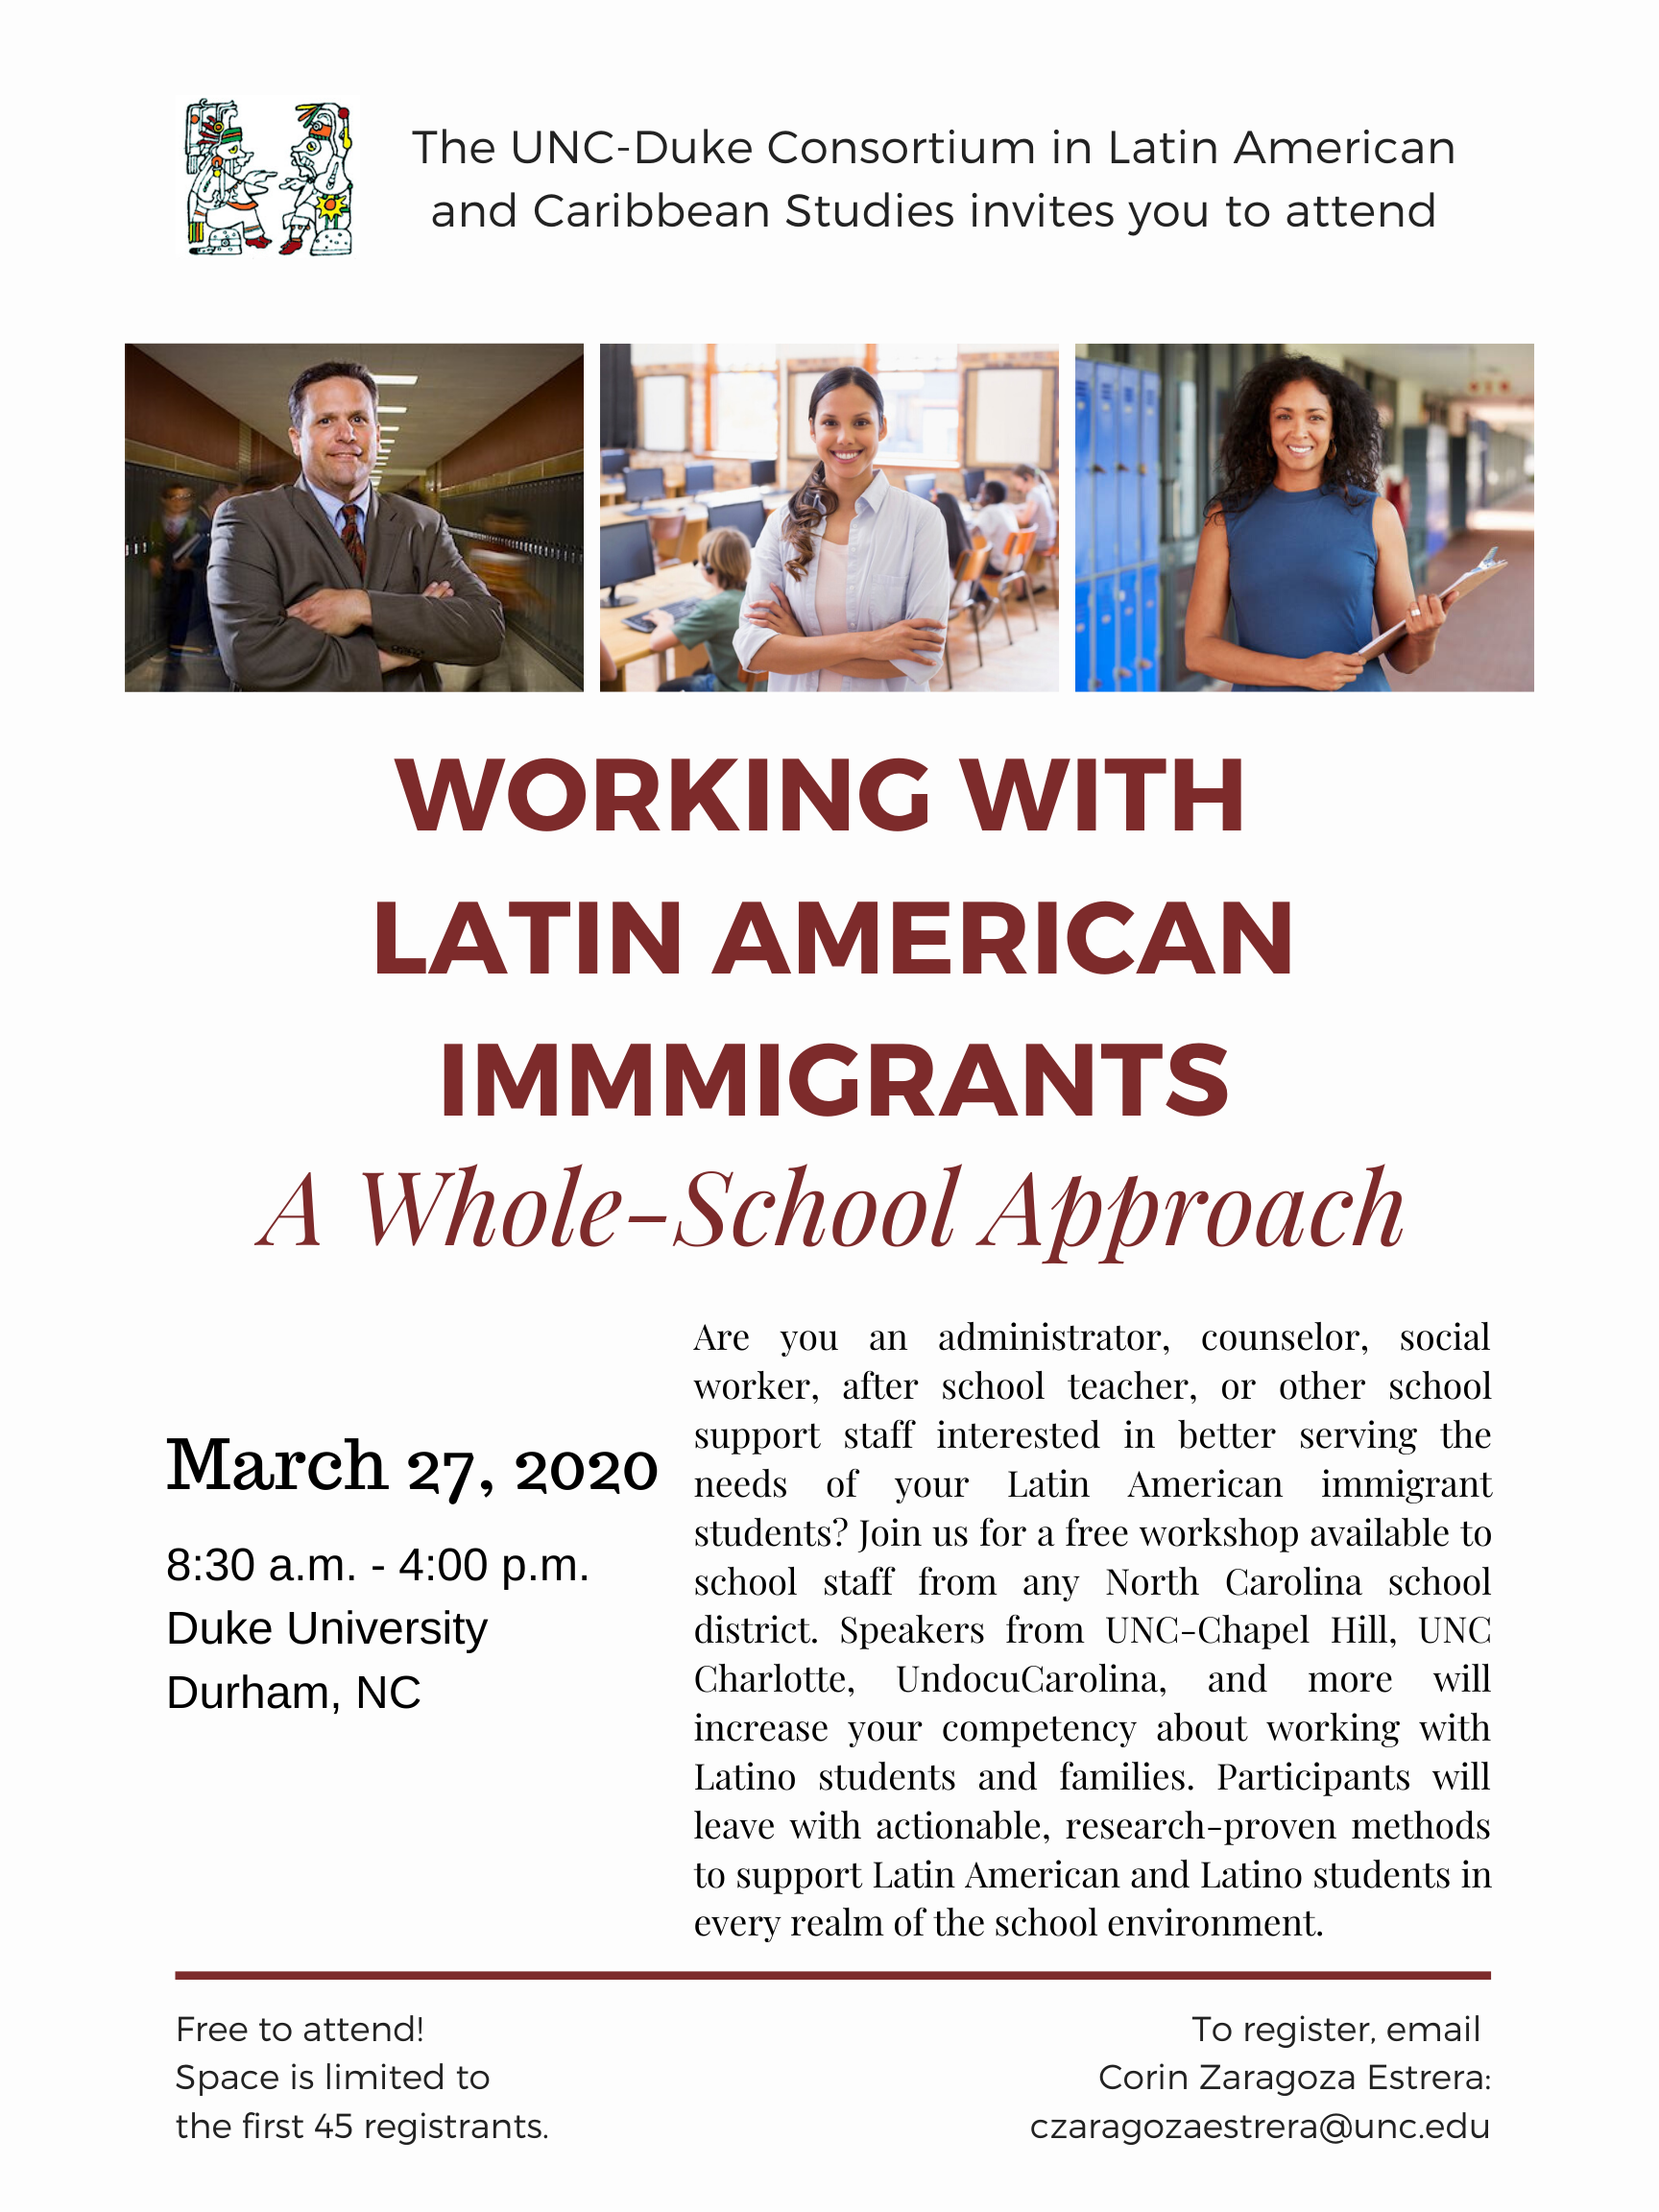 Working with Latin American Immigrants